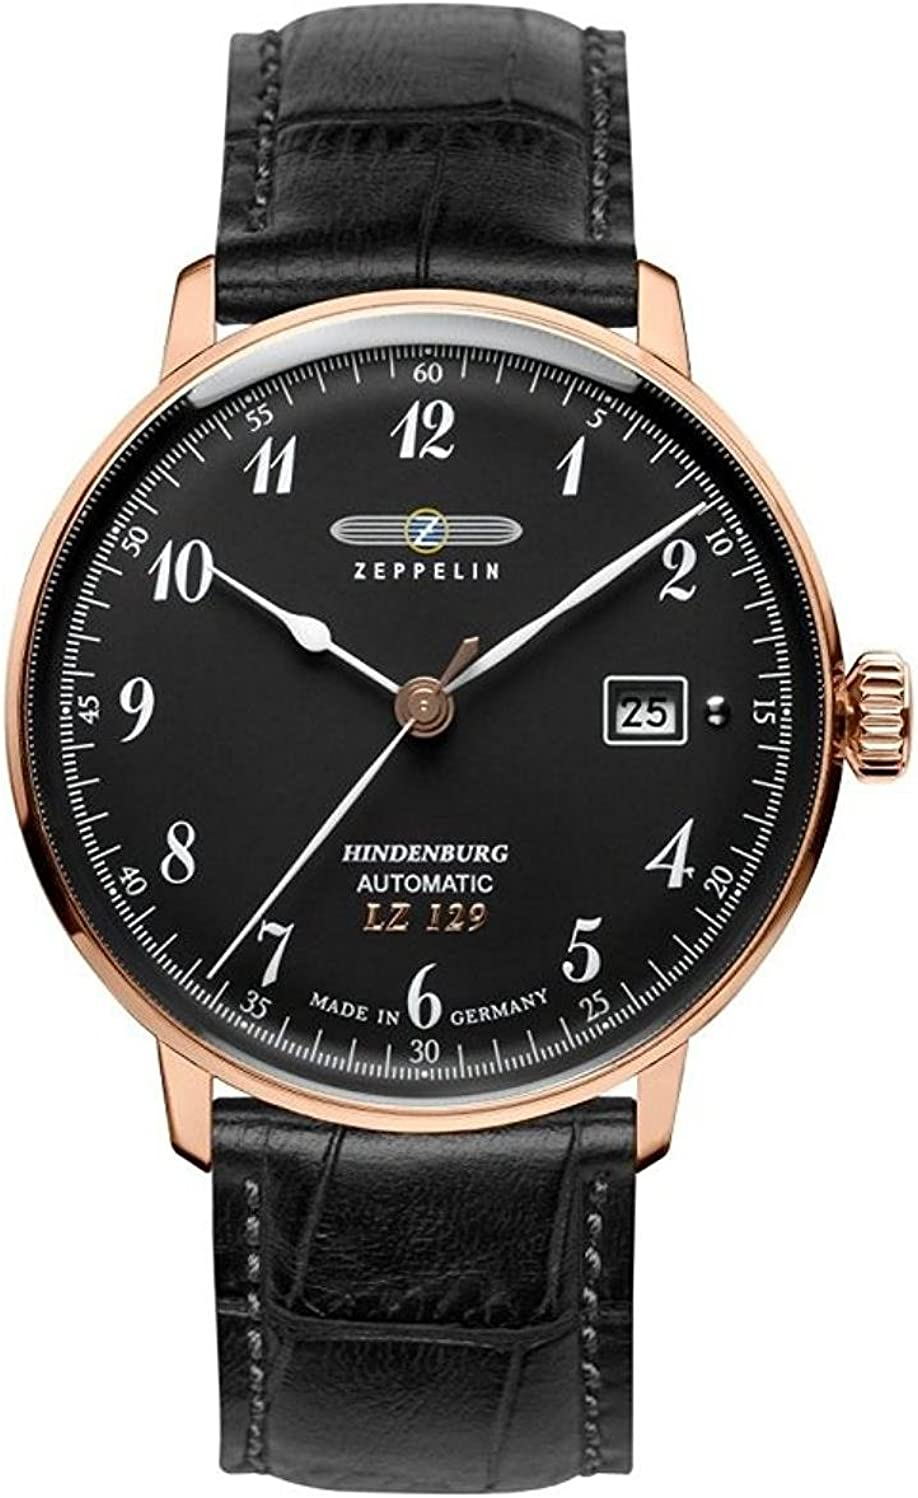 Zeppelin Series LZ129 Hindenburg Men's Automatic Date Watch Black and Rose Gold 7068-2